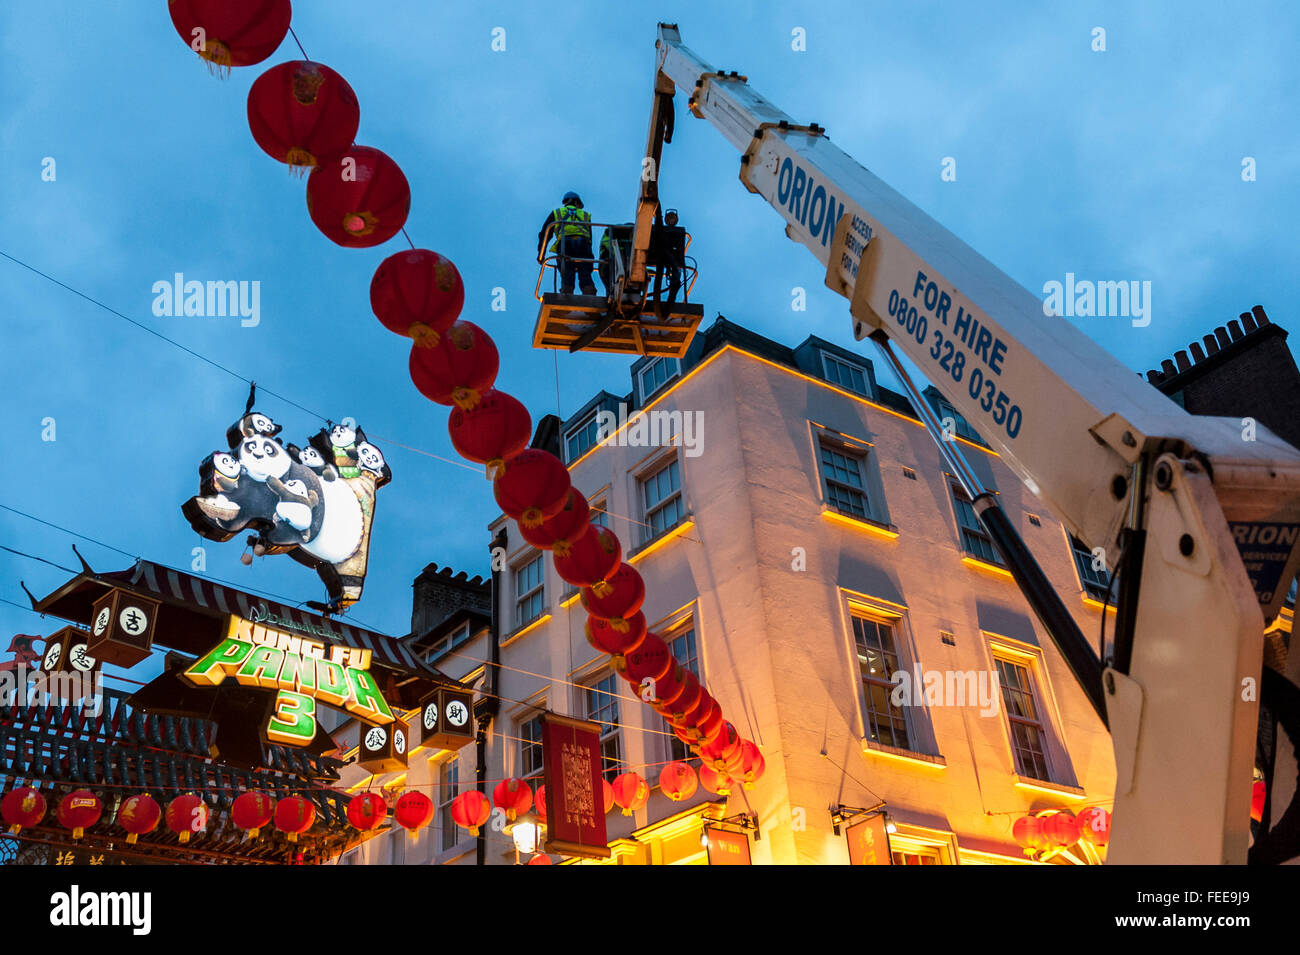 London, UK  5 February 2016  As Chinatown prepares for Chinese New